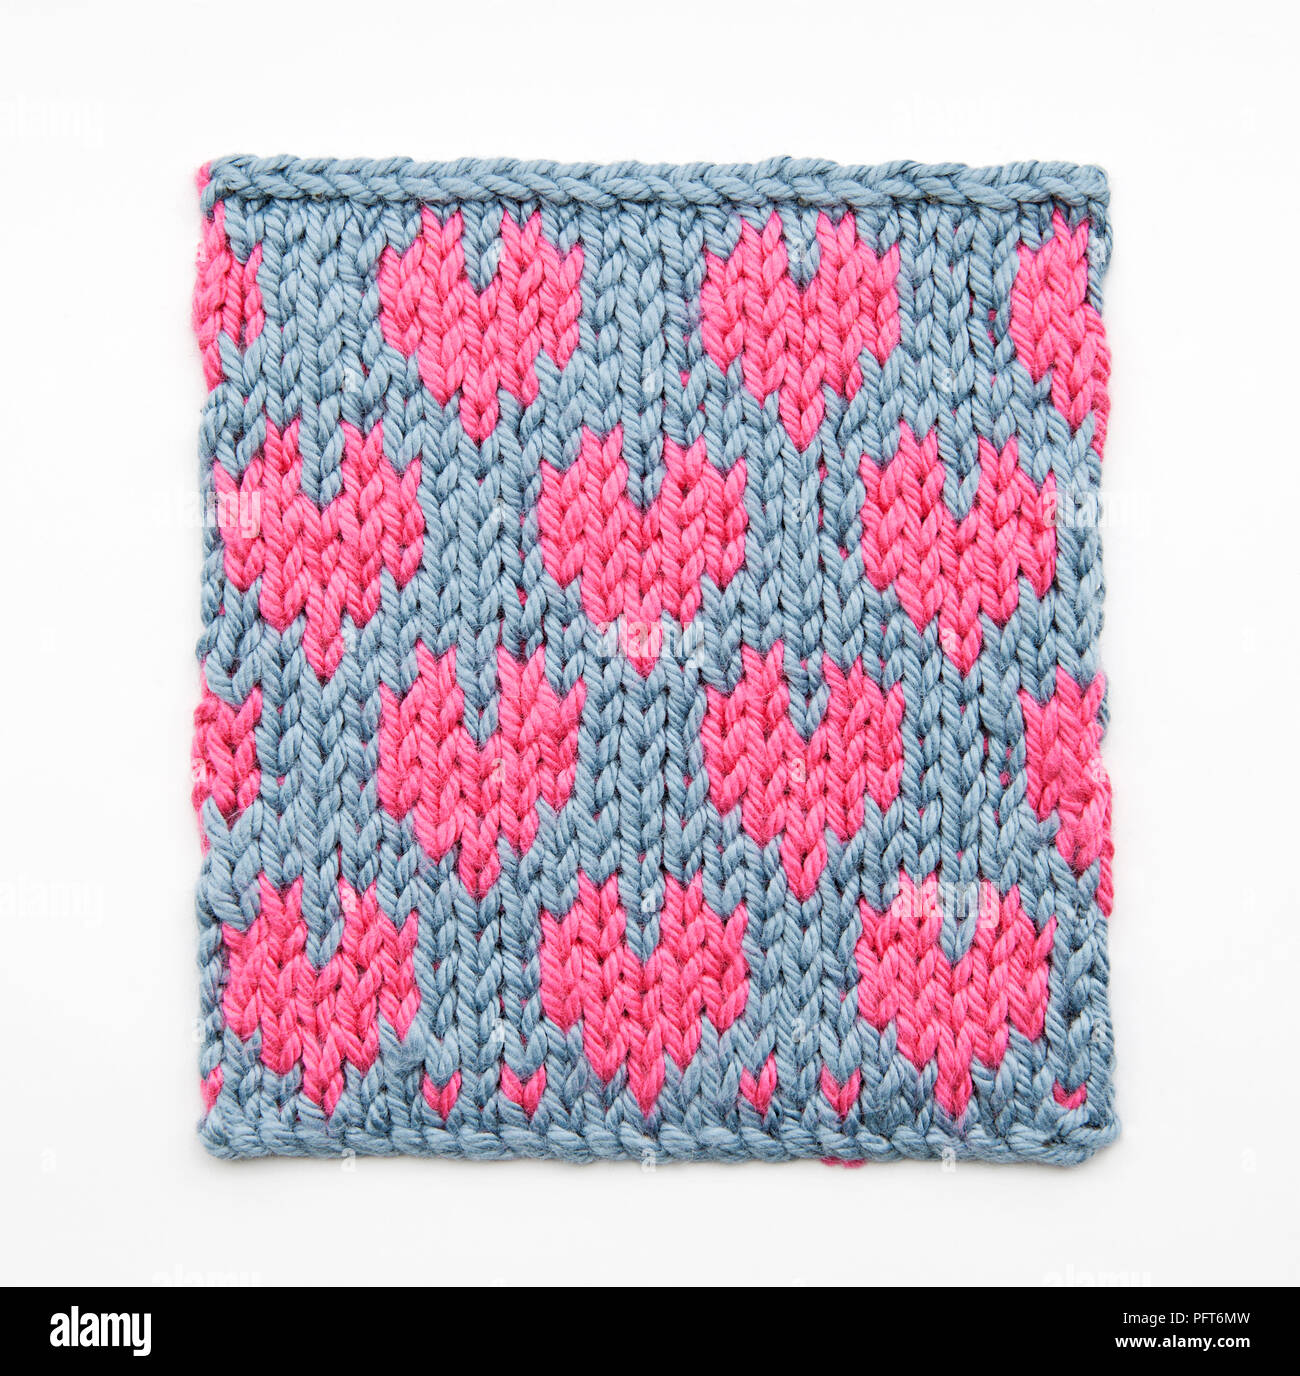 Knitted Heart Pattern Using Fair Isle Technique Stock Photo